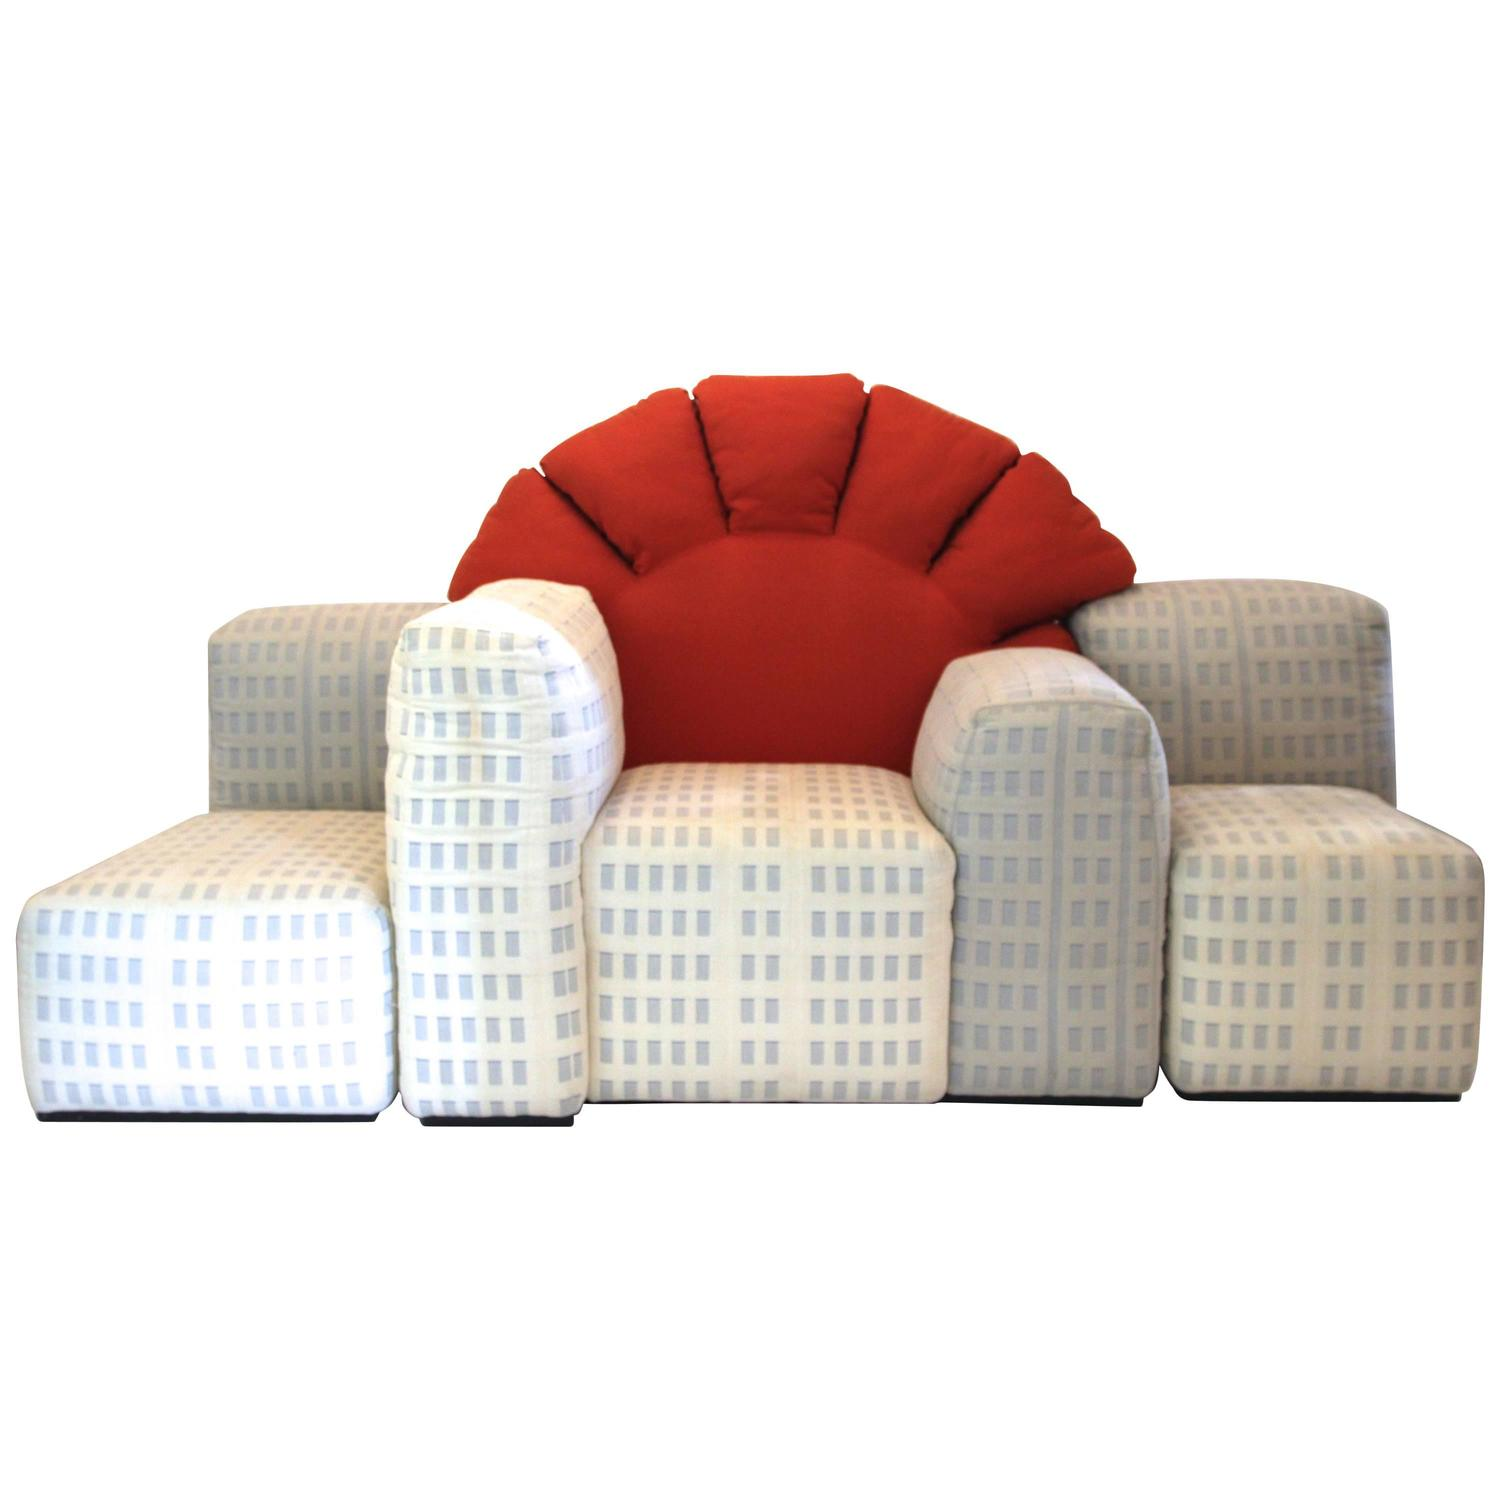 gaetano pesce new york sunrise sofa produced by cassina